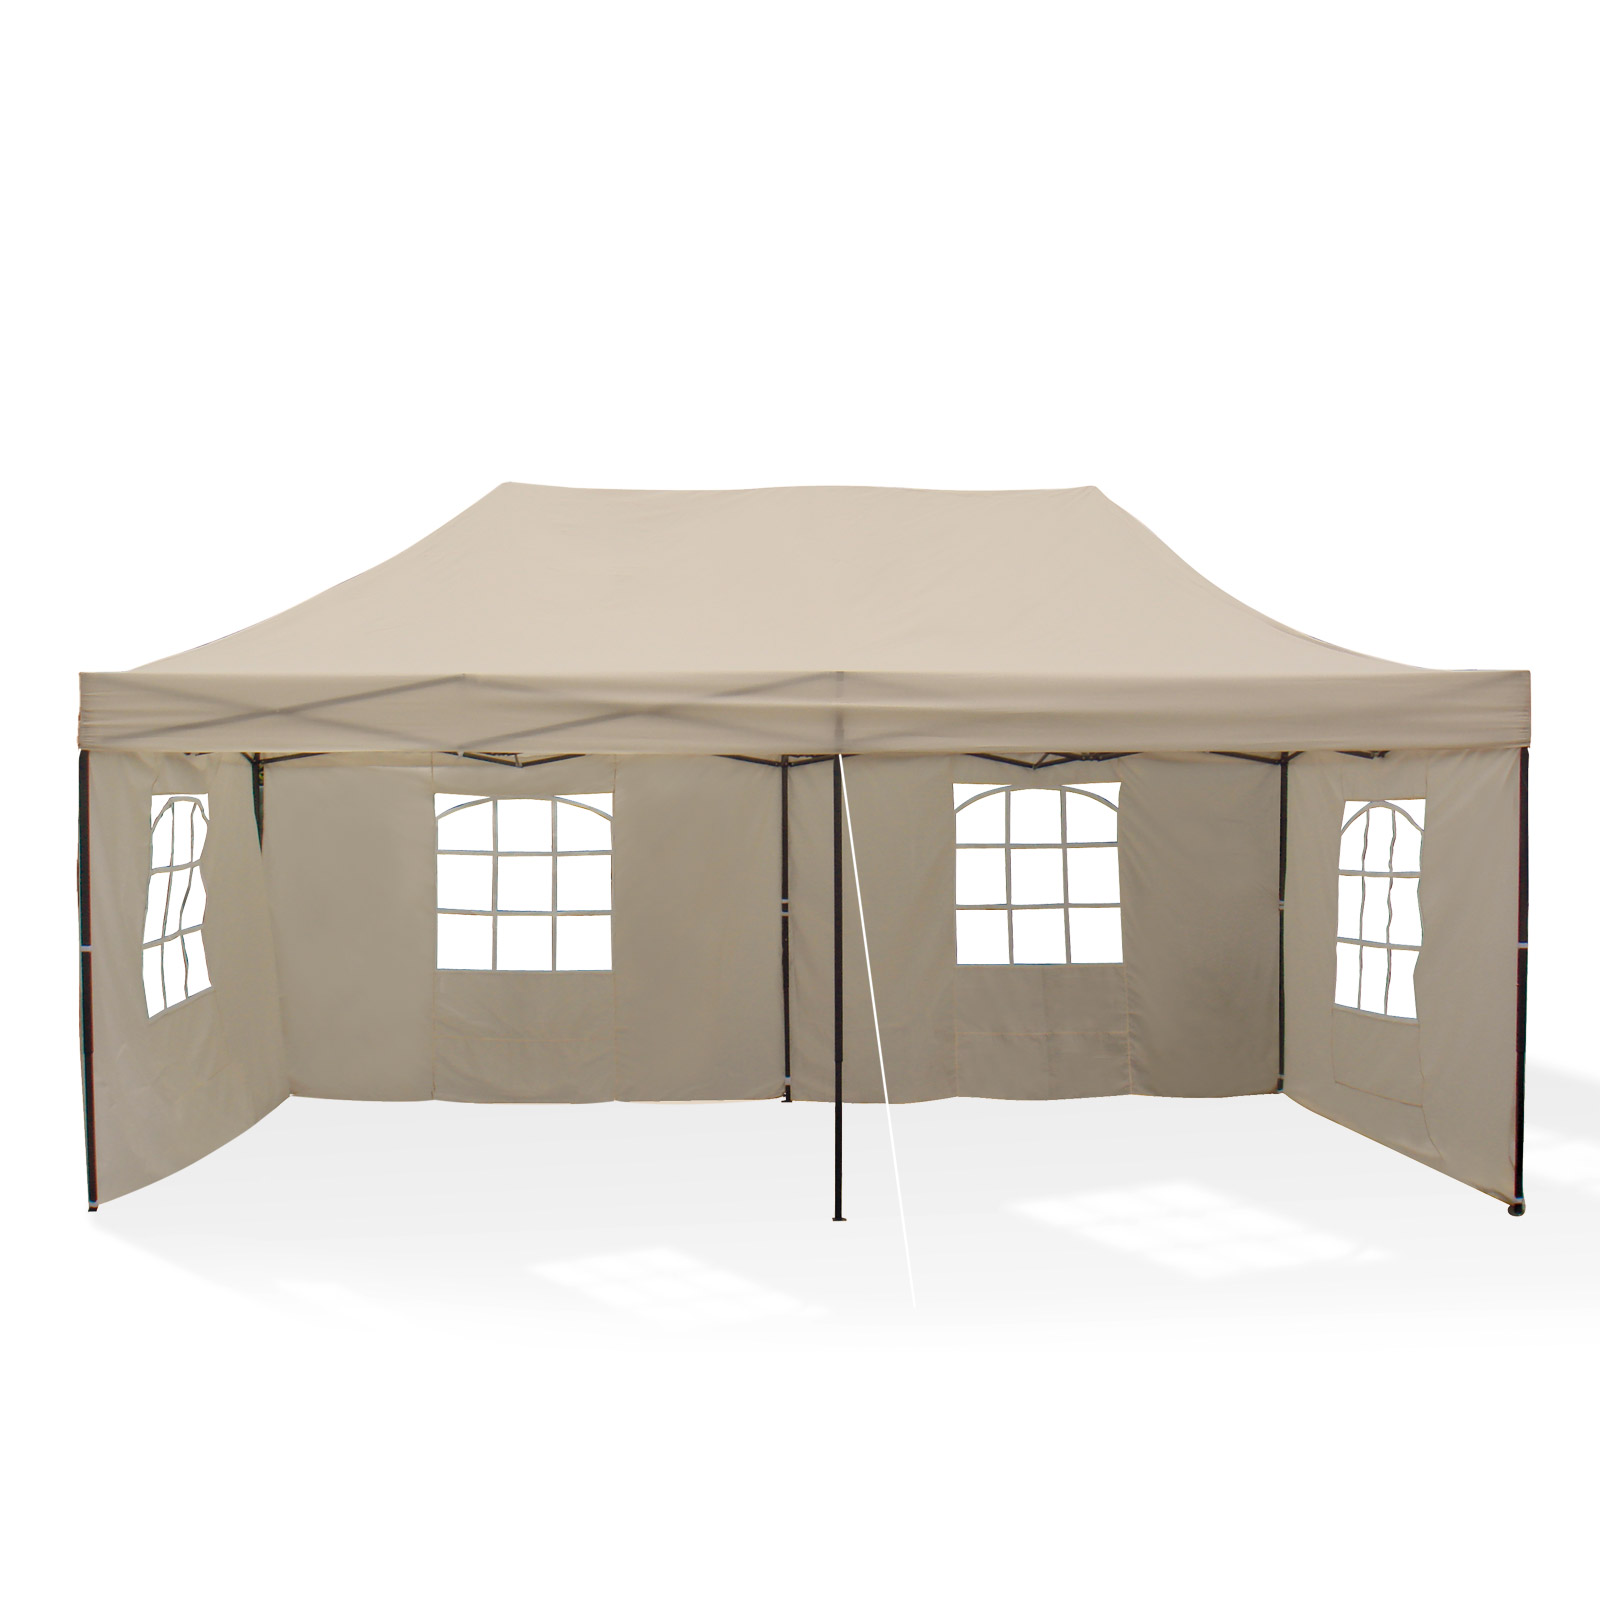 metall faltpavillon xxl 3x6 m pavillon partyzelt zelt berdachung beige 918460 ebay. Black Bedroom Furniture Sets. Home Design Ideas